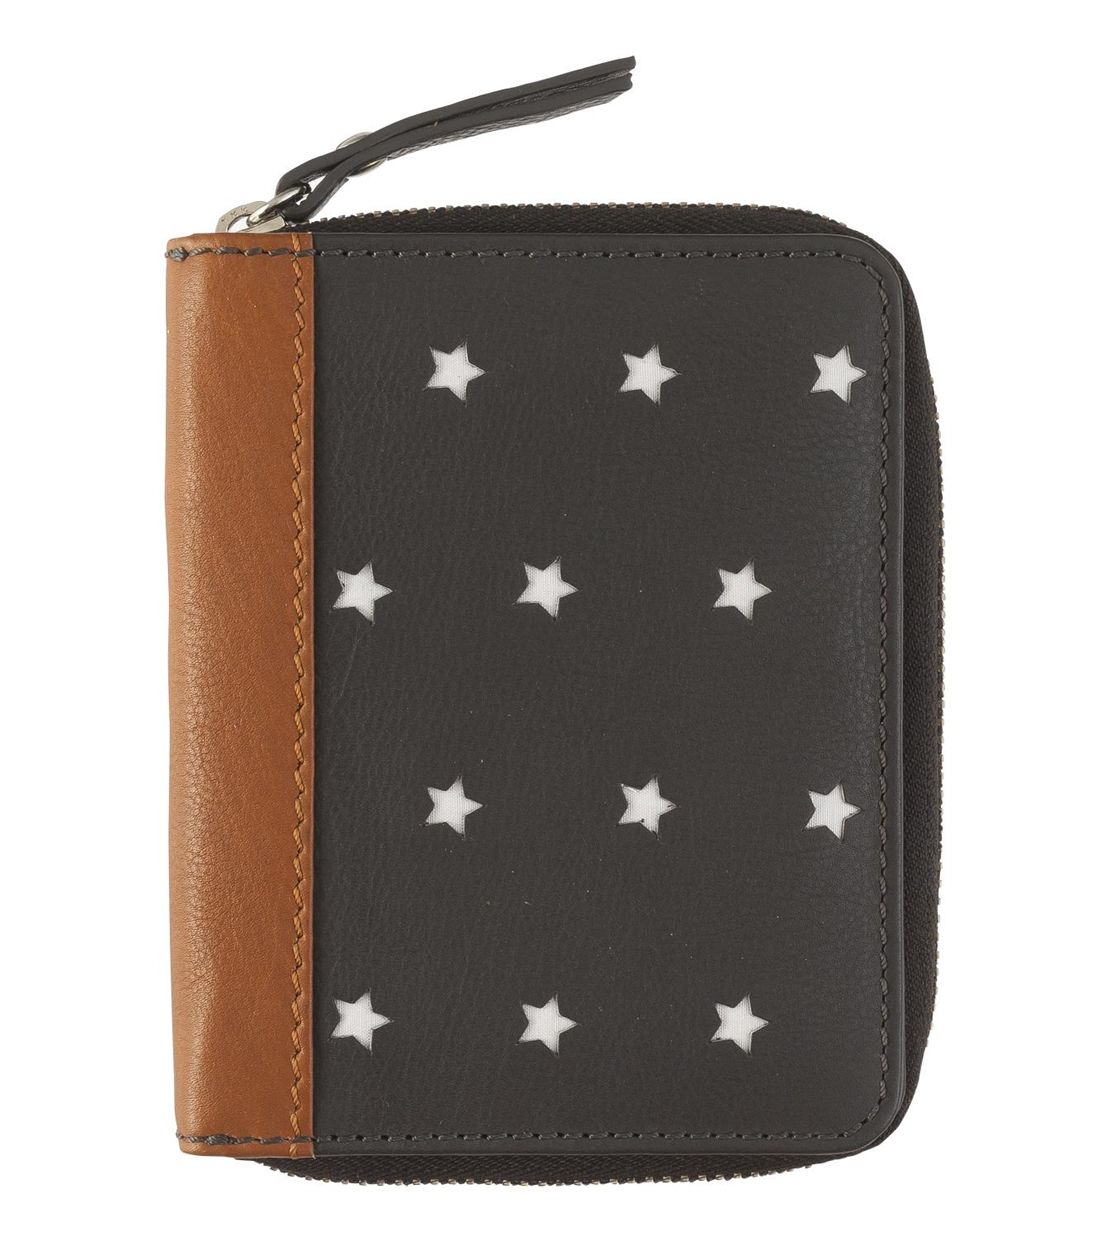 Dames Portemonnee Hema.Leren Dames Portemonnee Hema Wish List Zip Around Wallet